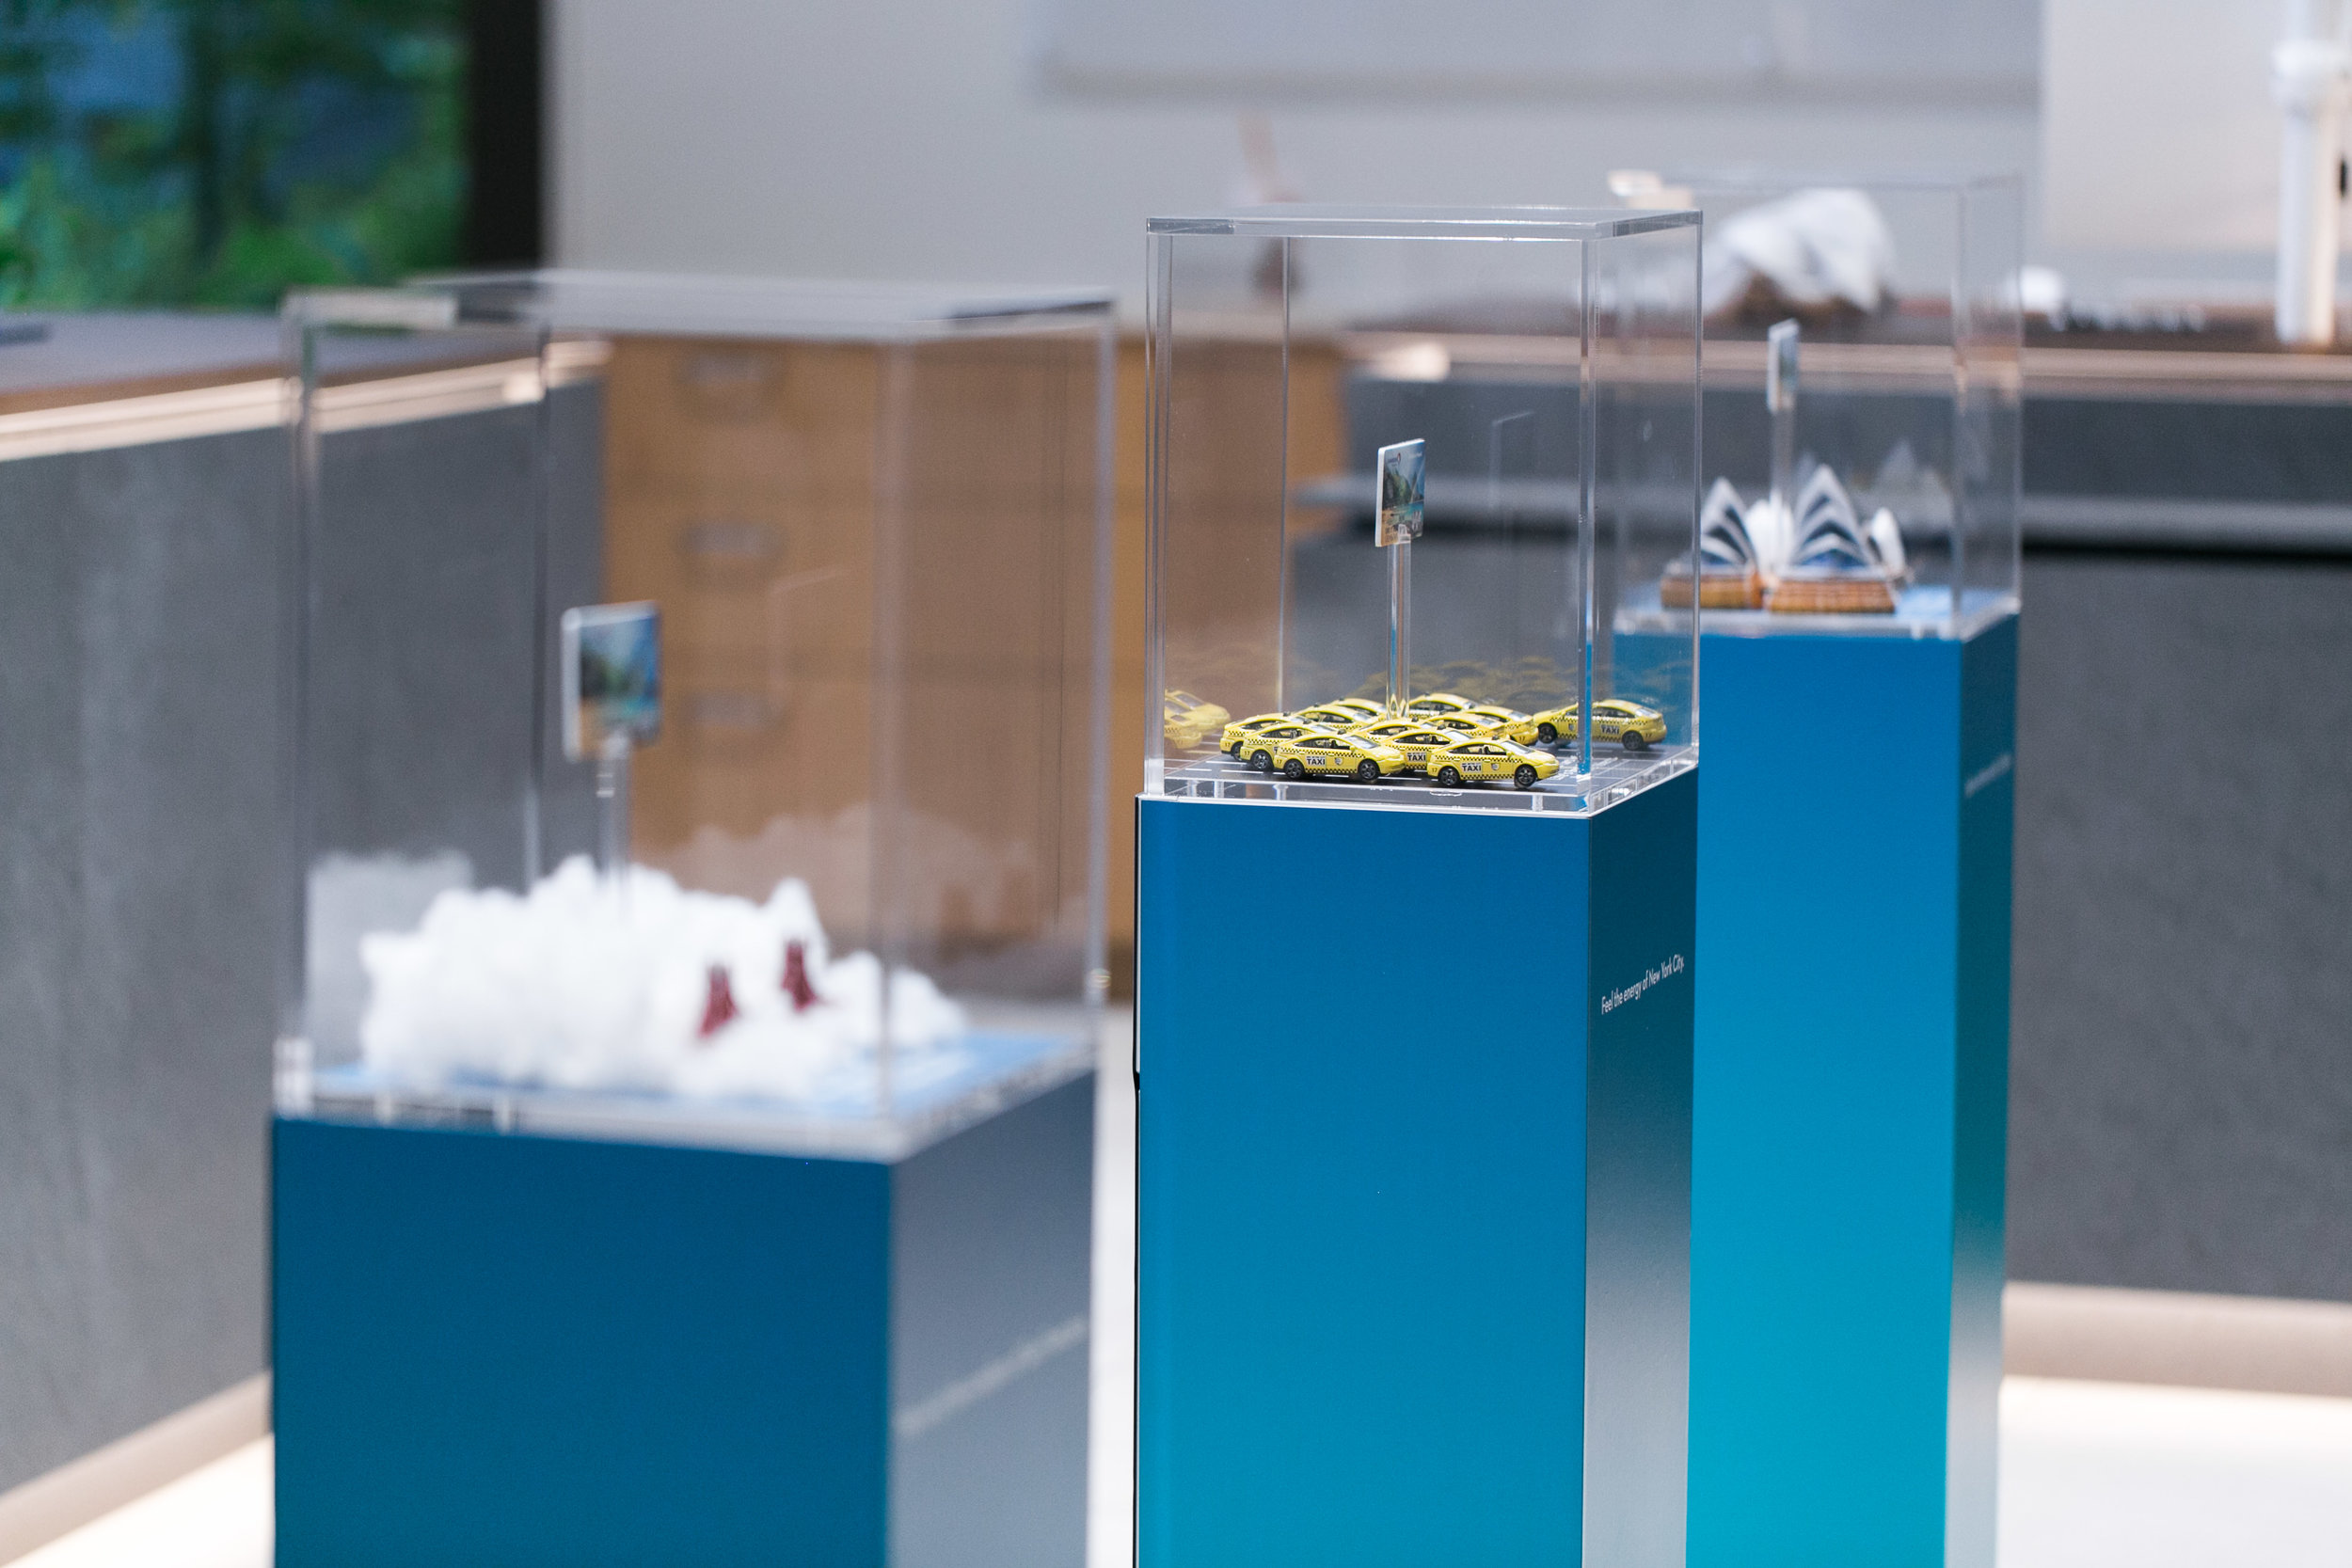 CURATE-BOH-Downtown-Display-Pedestals-Angle.jpg